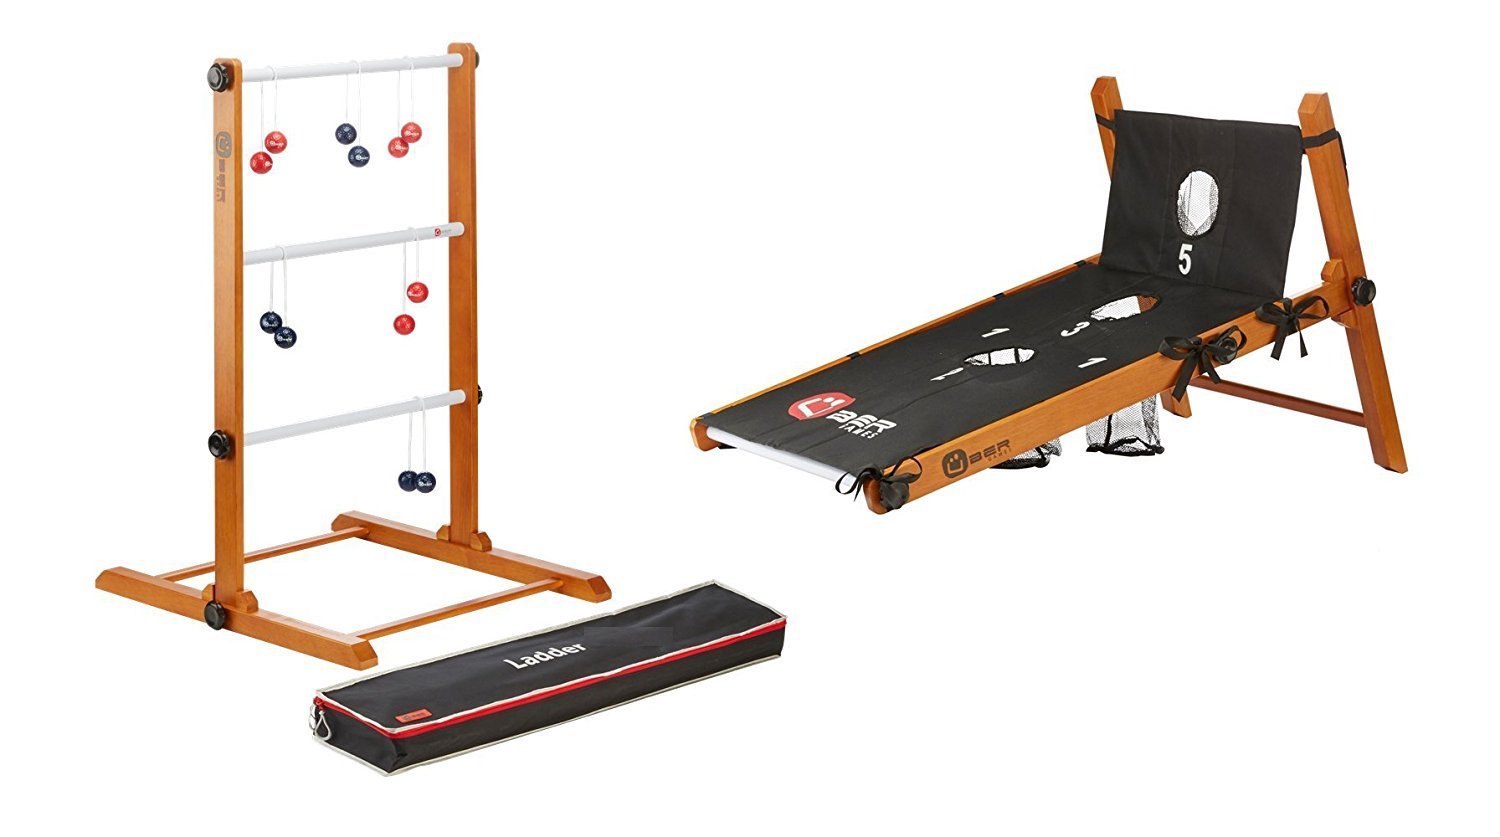 Uber Games Ultimate Tailgate Game 2-in-1 Ladder Toss and Cornhole - Single Set